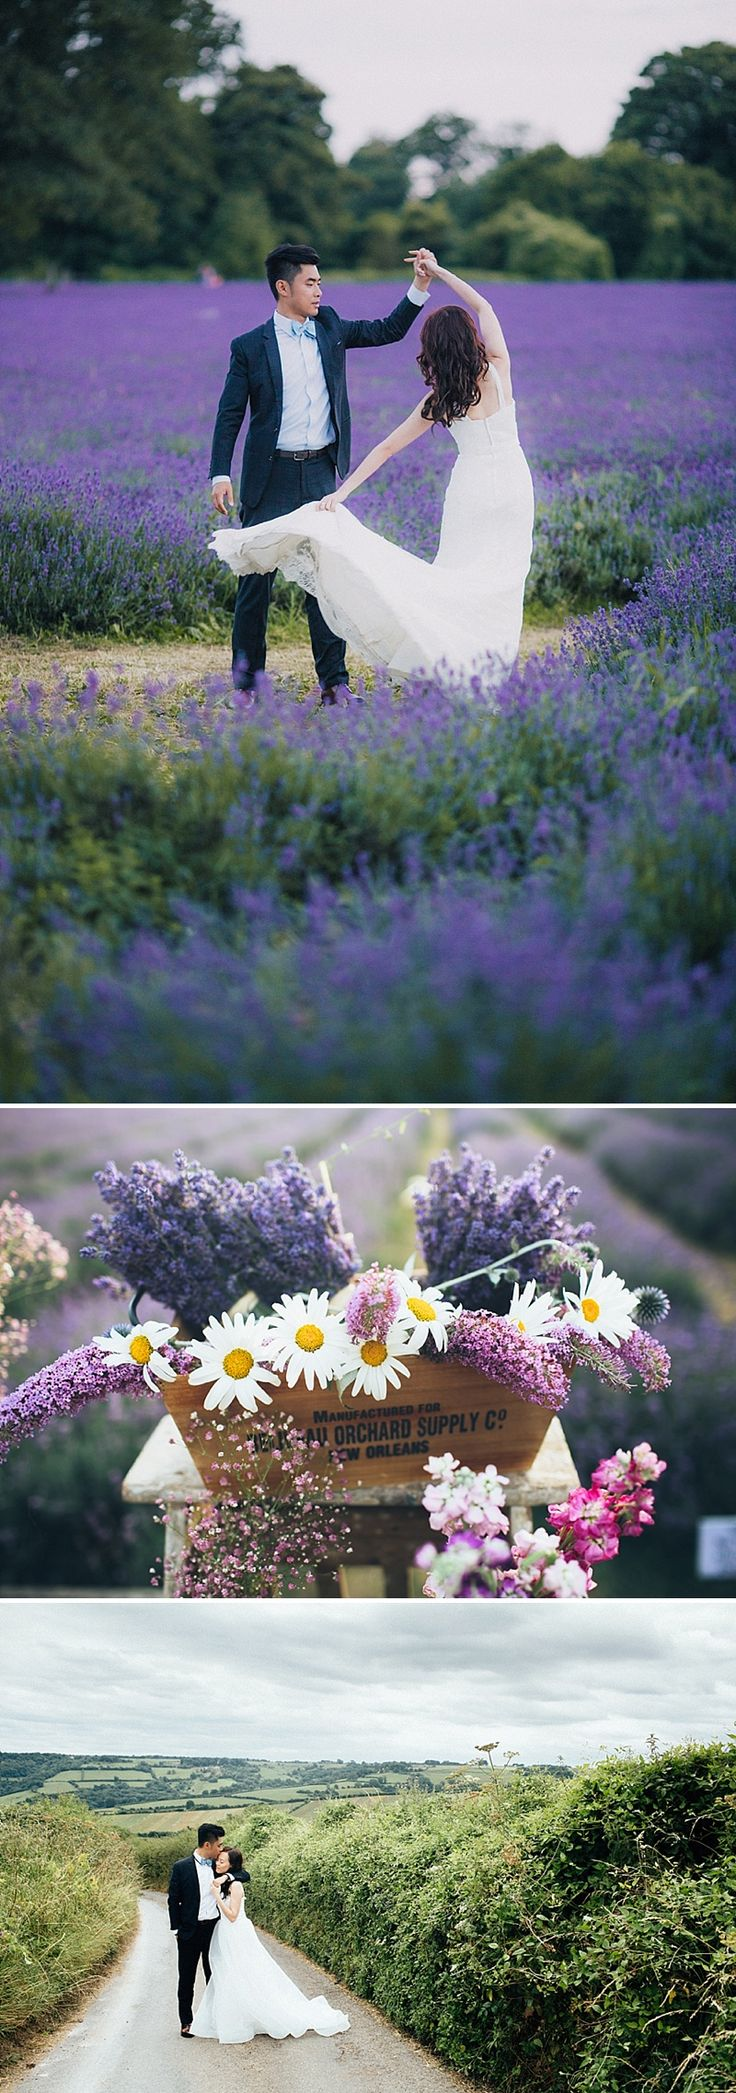 Pre wedding photo shoot in lavender fields